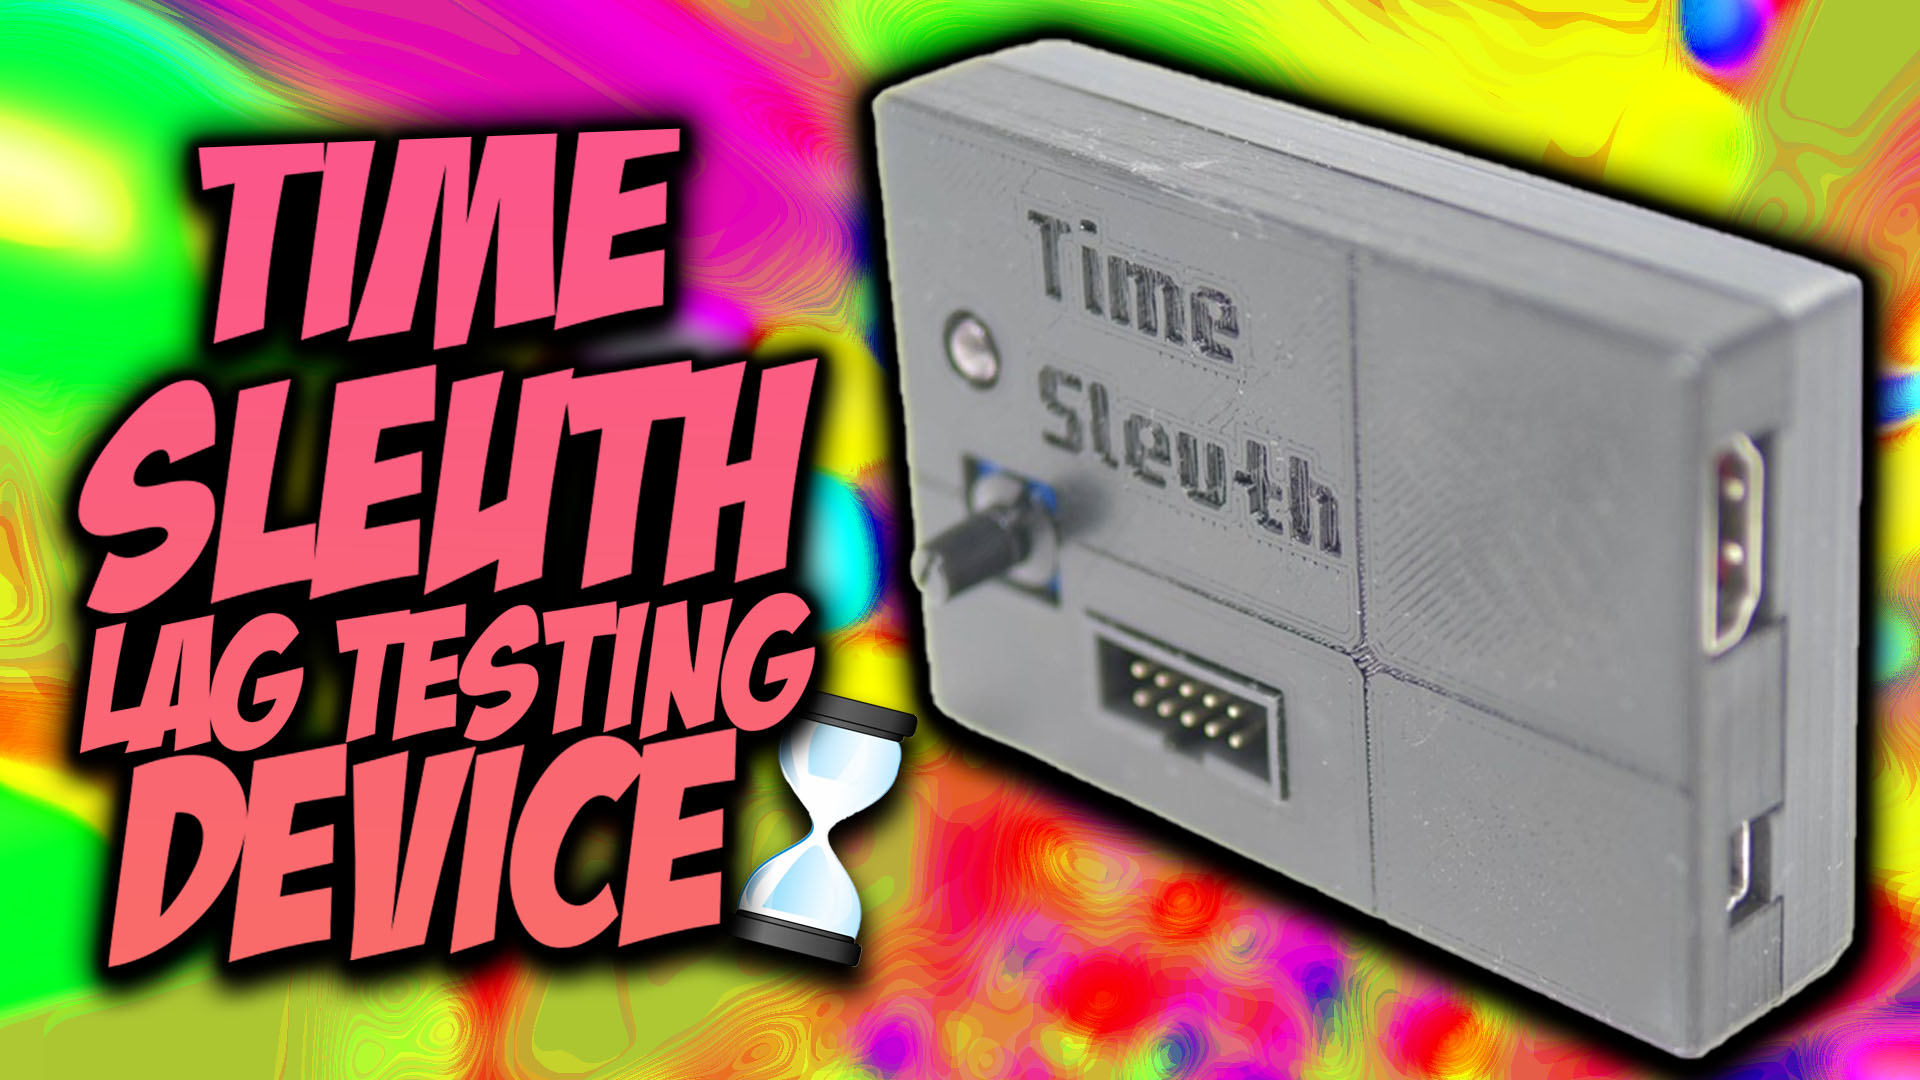 Time Sleuth: Overview and Configuration